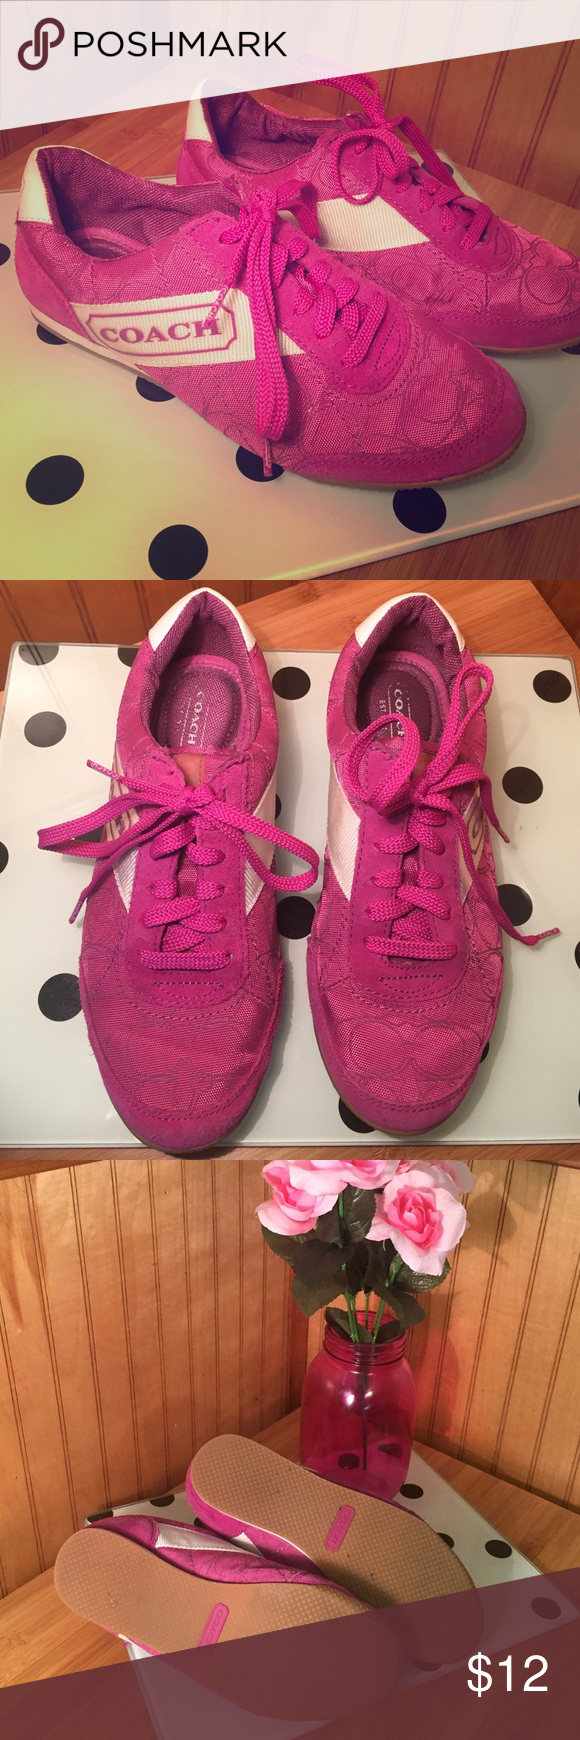 Coach Sneakers OMG! These purple Coach sneakers will make your wardrobe pop! They are gently used and only show light signs of wear. Coach Shoes Sneakers